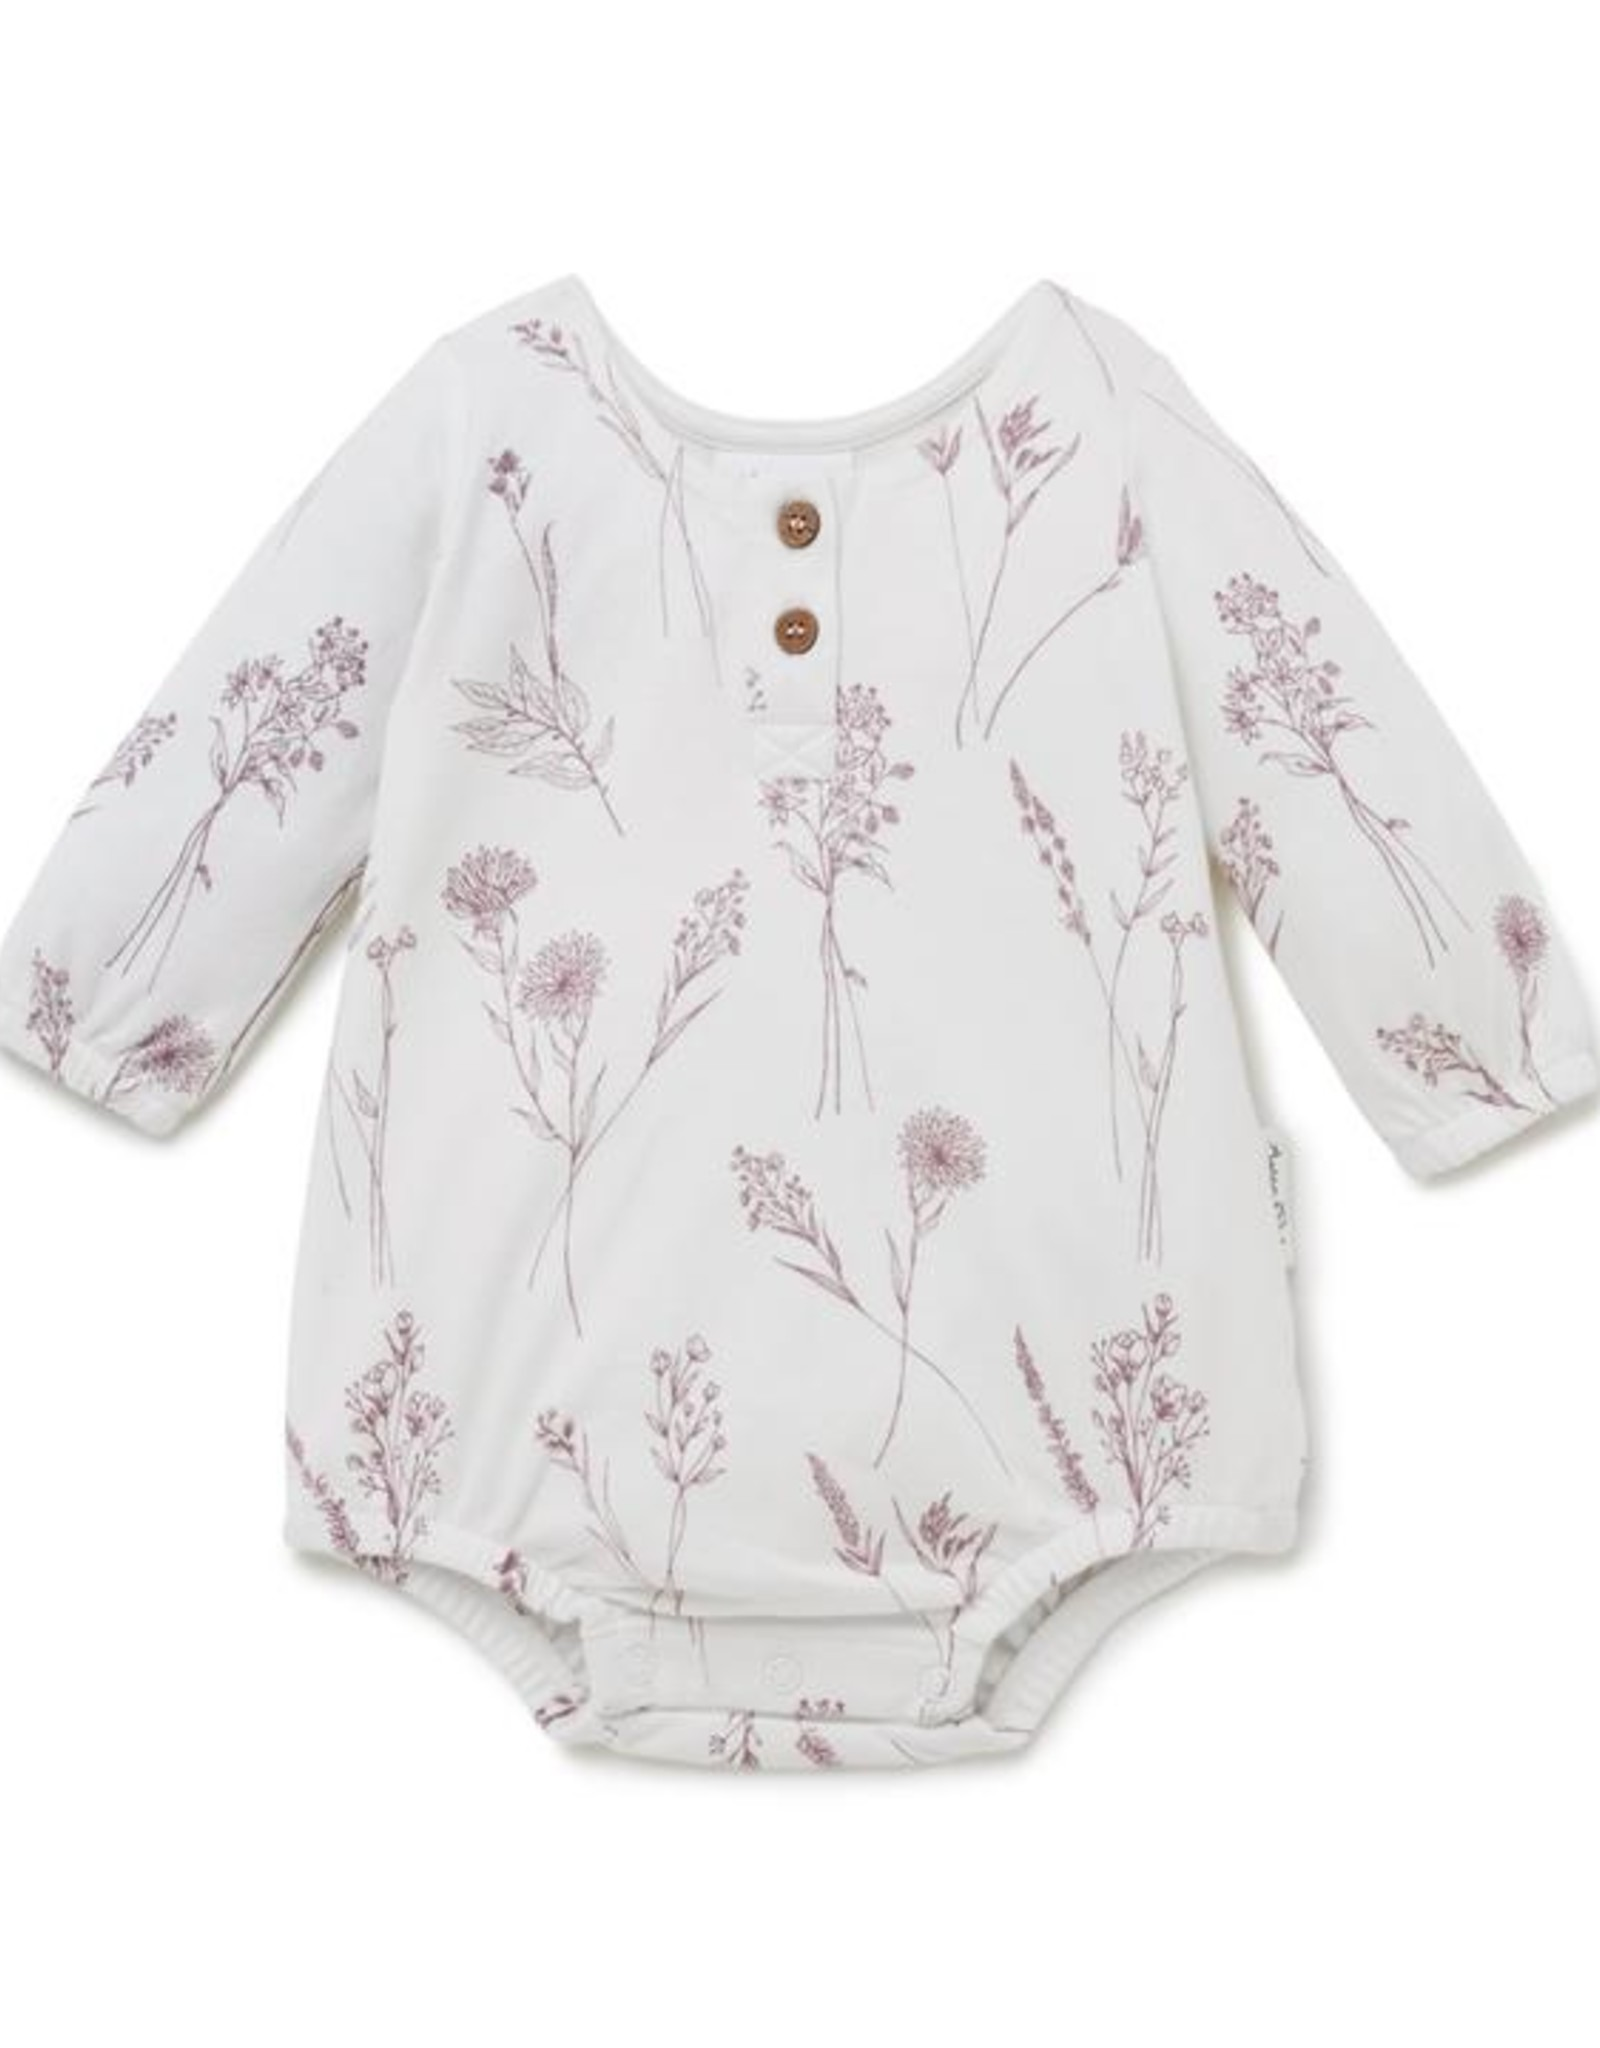 Aster & Oak Aster & Oak - Wildflower Bubble Romper